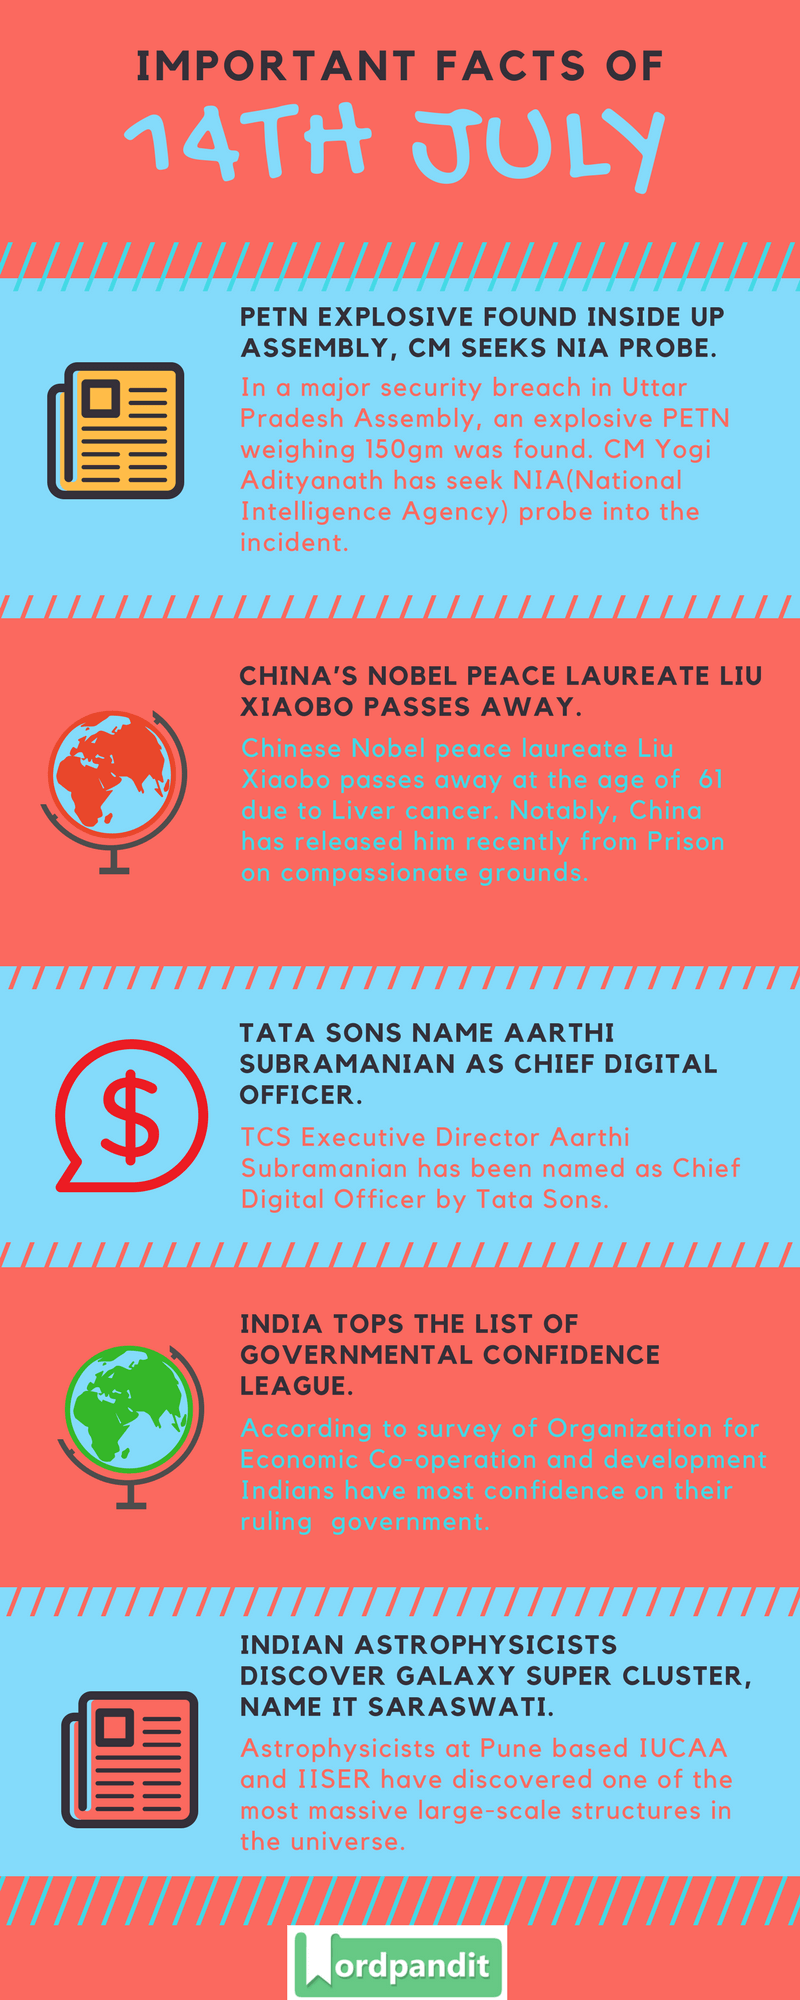 Daily-Current-Affairs-14-july-2017-Current-Affairs-Quiz-july-14-2017-Current-Affairs-Infographic